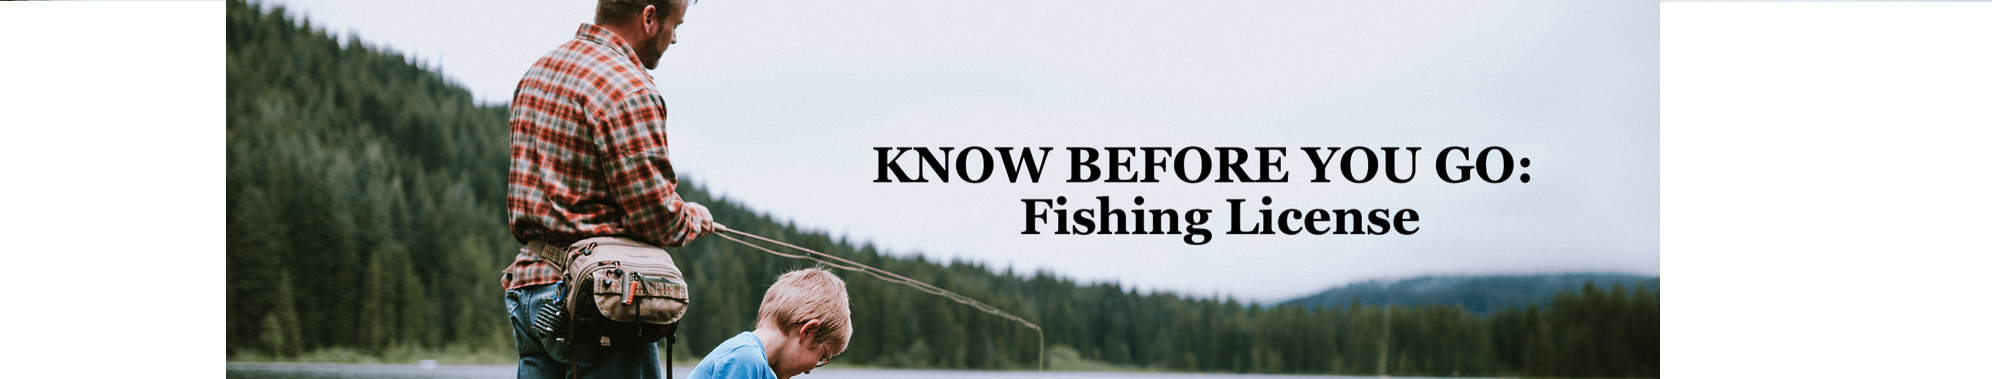 Know before you go - fishing license